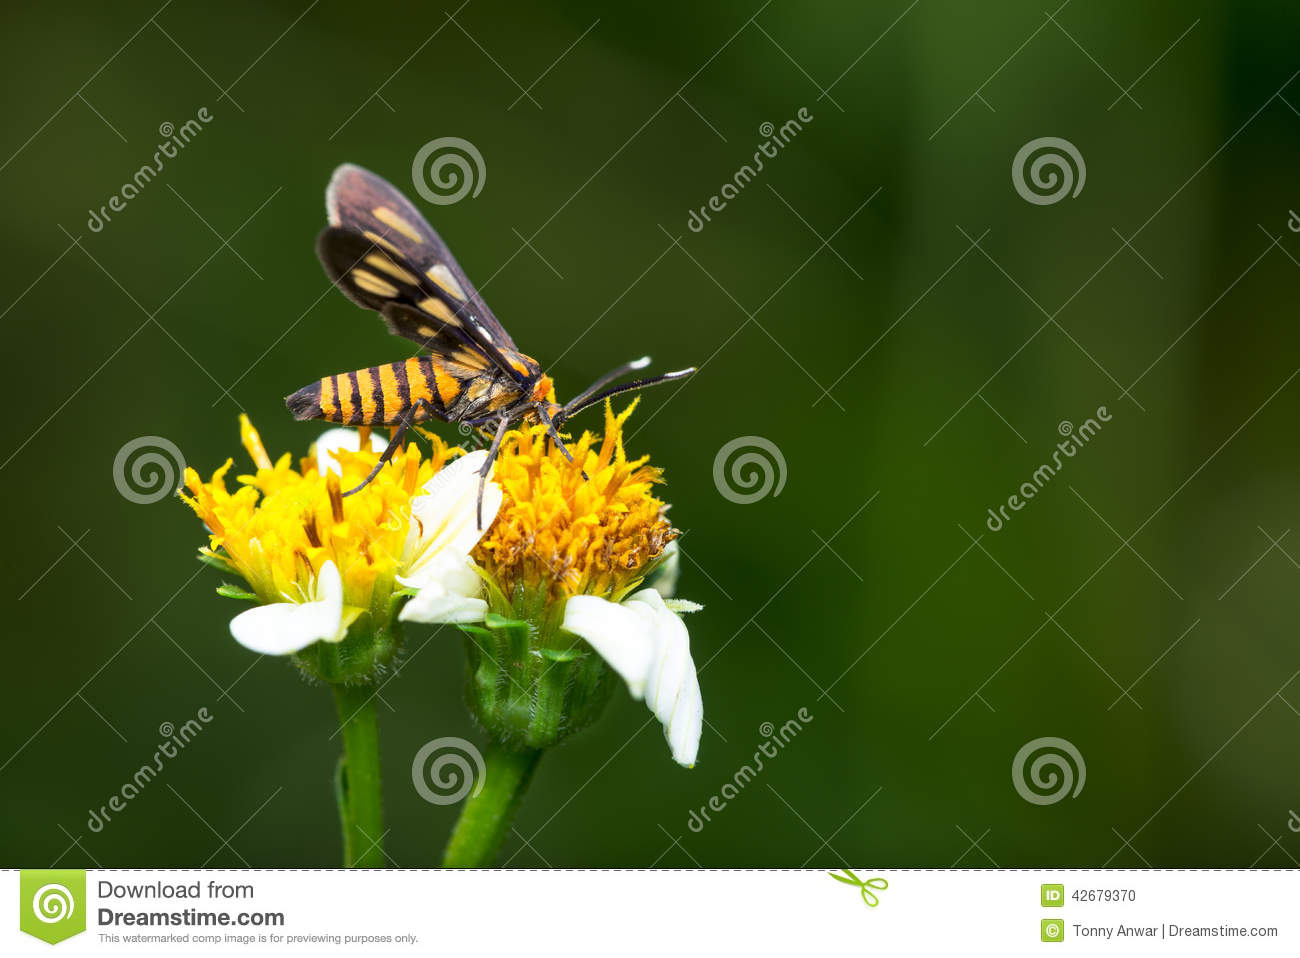 Tiger Moth Pollination